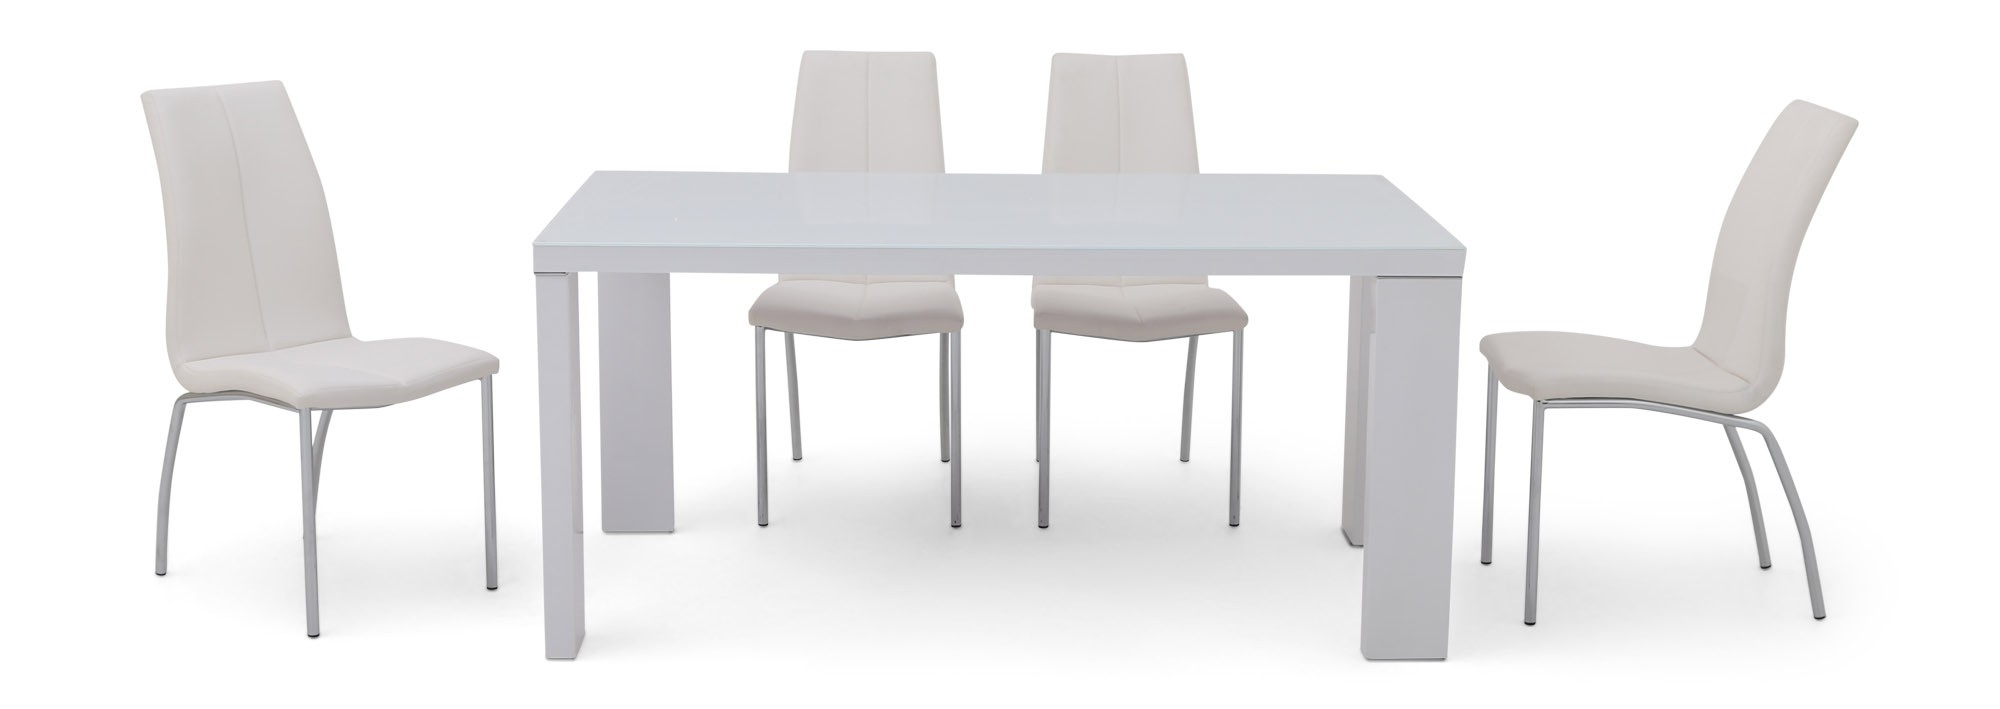 White Gloss Dining Room Furniture Inside Recent Lucille White Gloss With Glass Top Dining Table (View 25 of 25)